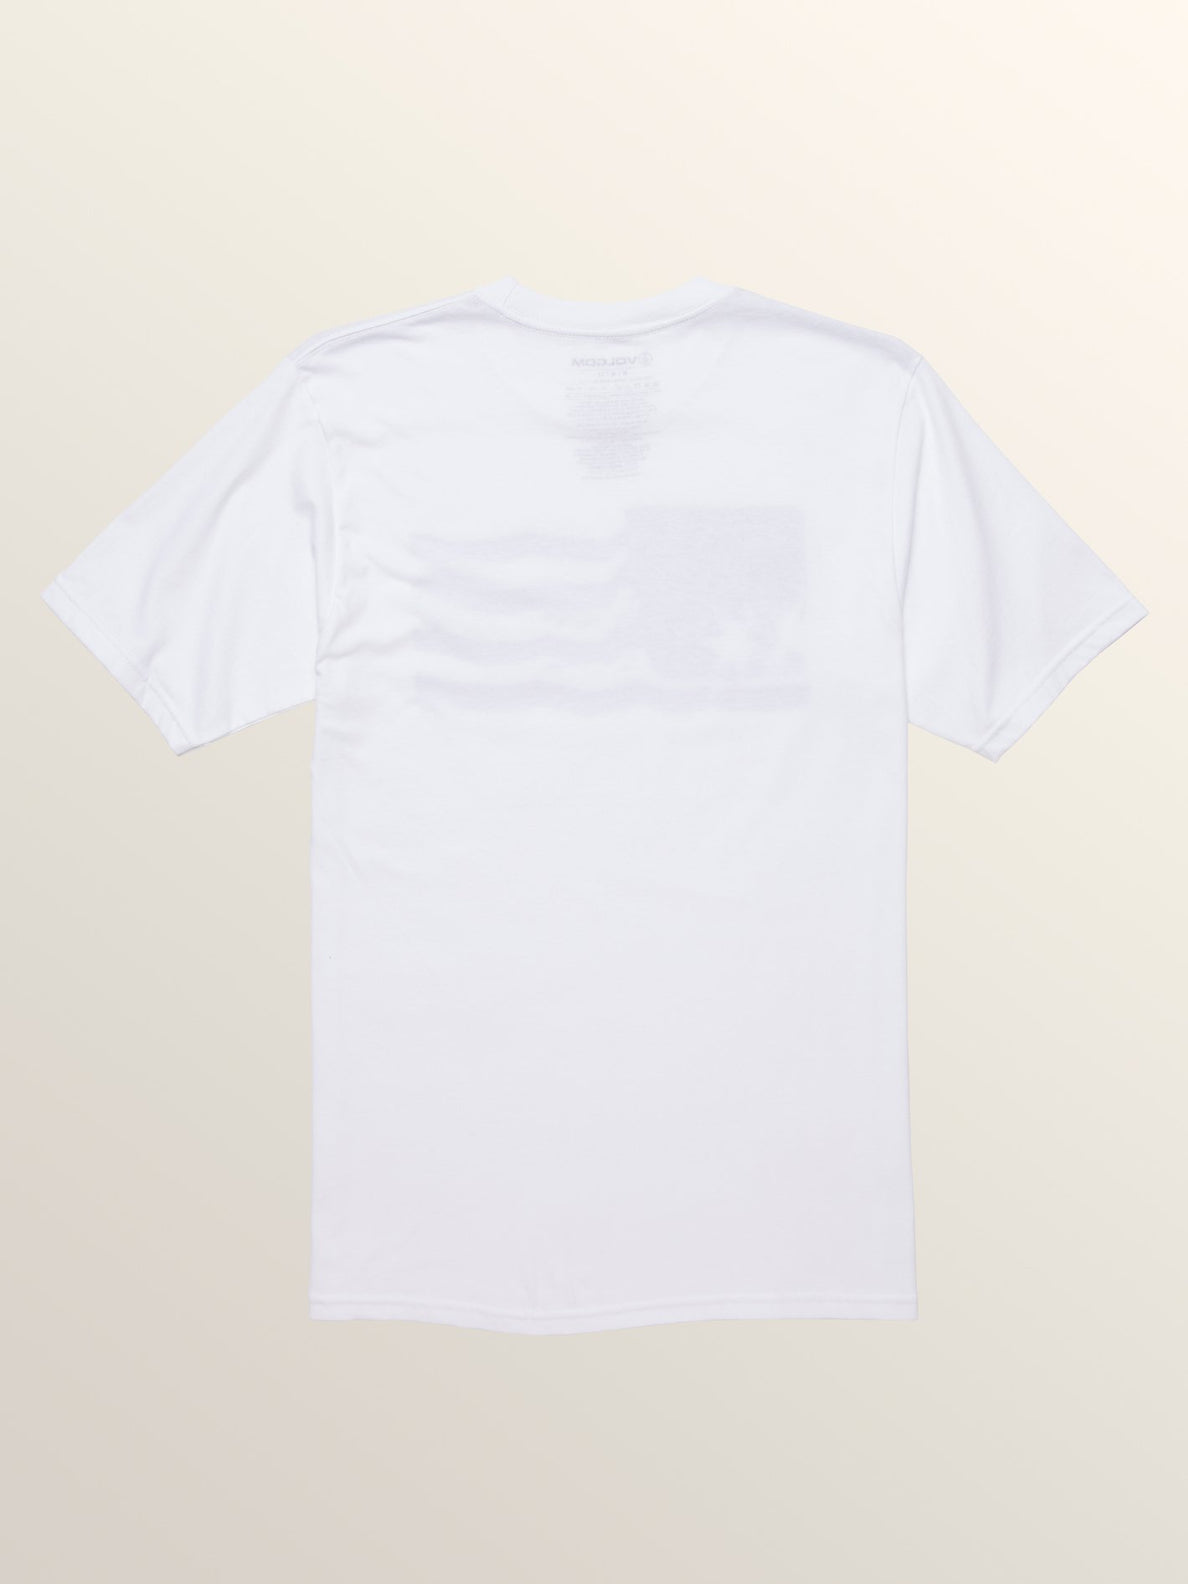 Fersure Short Sleeve Tee In White, Back View